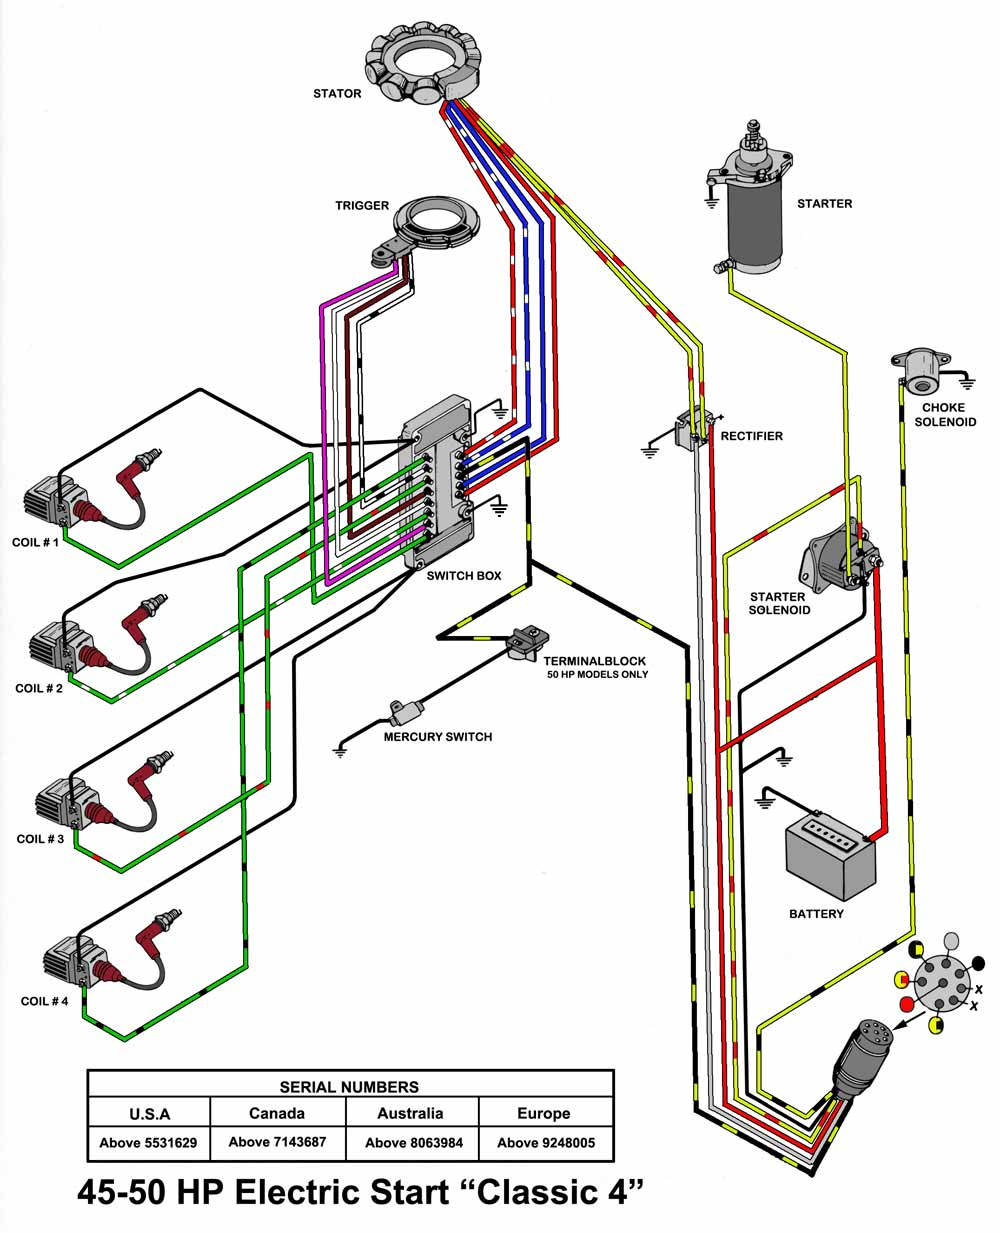 mercury 4 stroke outboard wiring diagram wiring library diagram rh 1 hhum thepuzzles training de mercury 25hp 4 stroke wiring diagram mercury 9.9 4 stroke wiring diagram